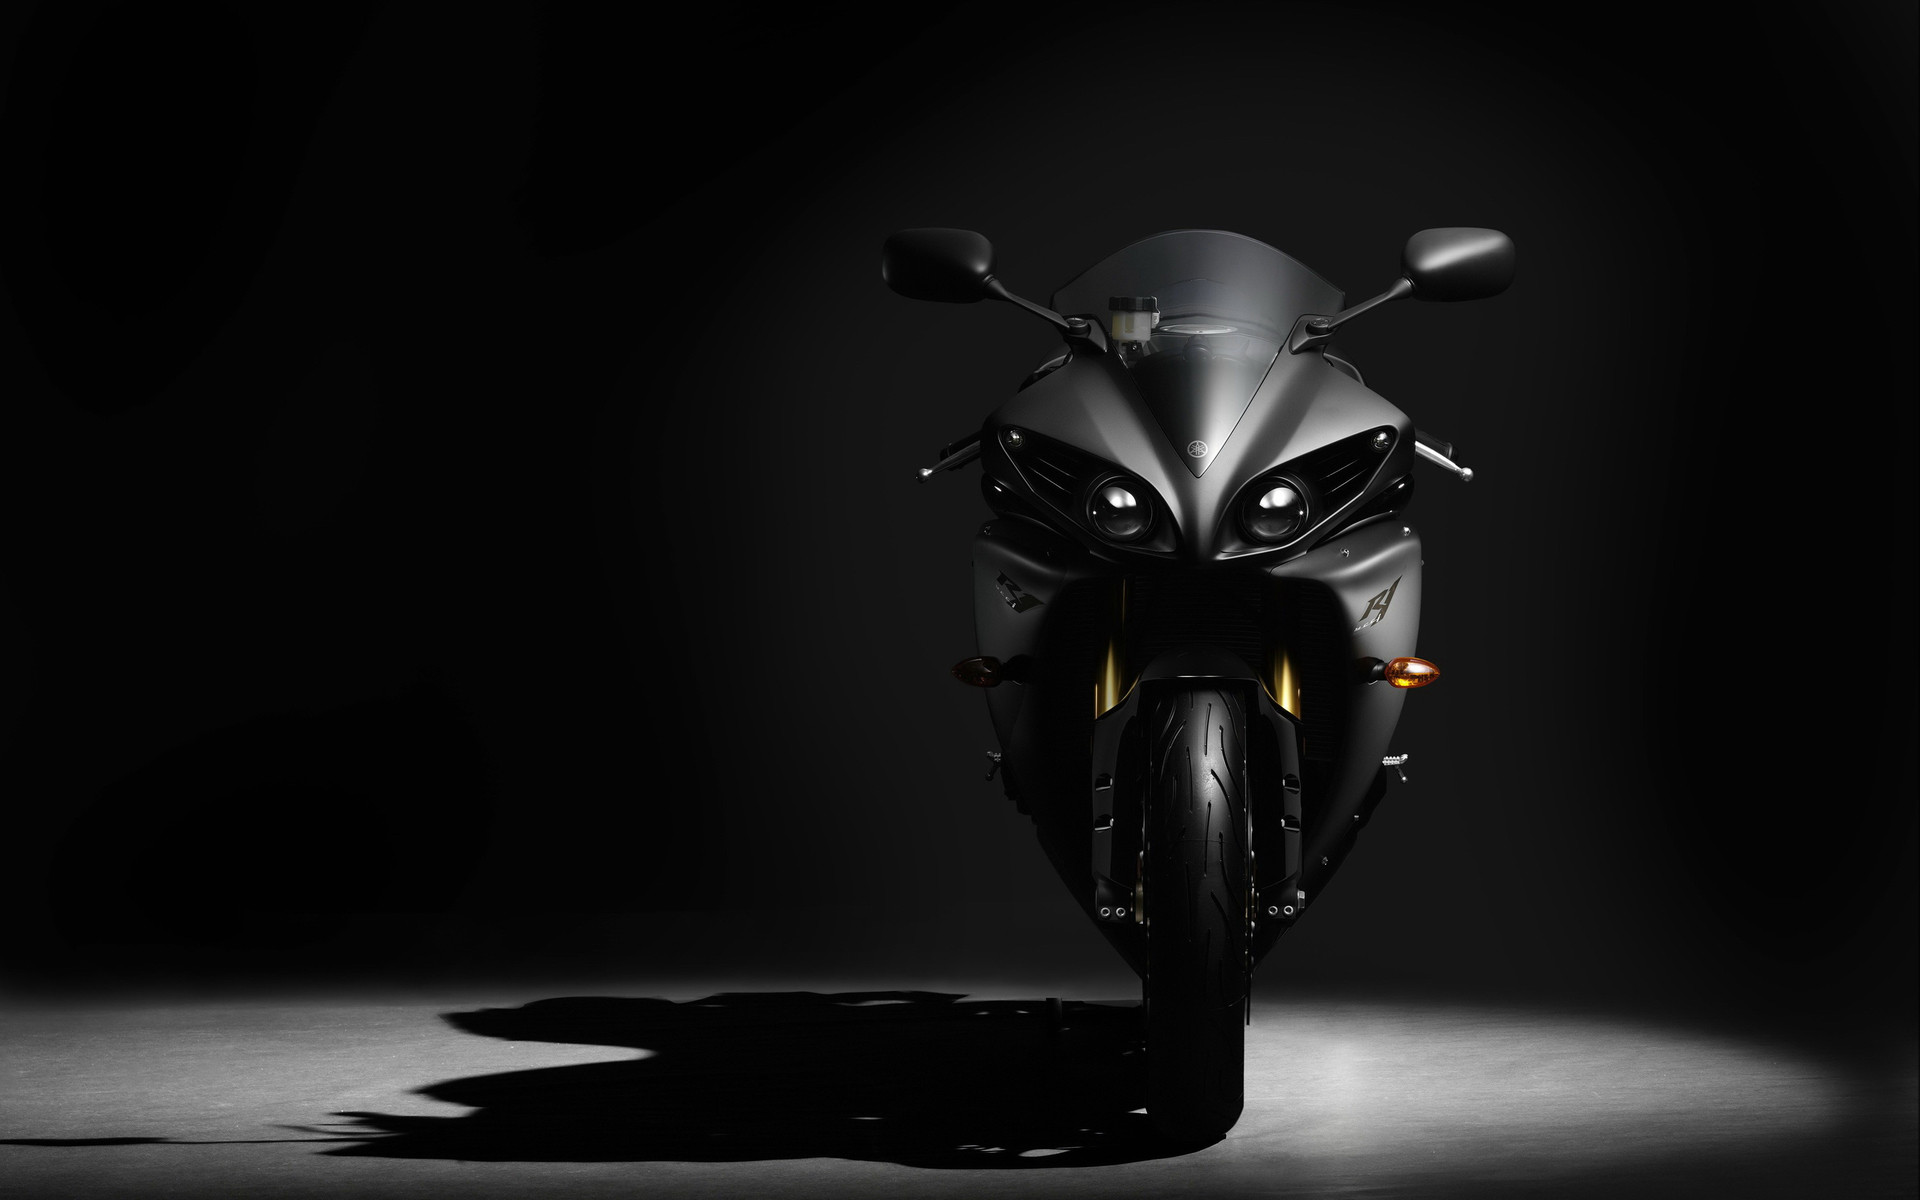 Street Bike Wallpaper 1